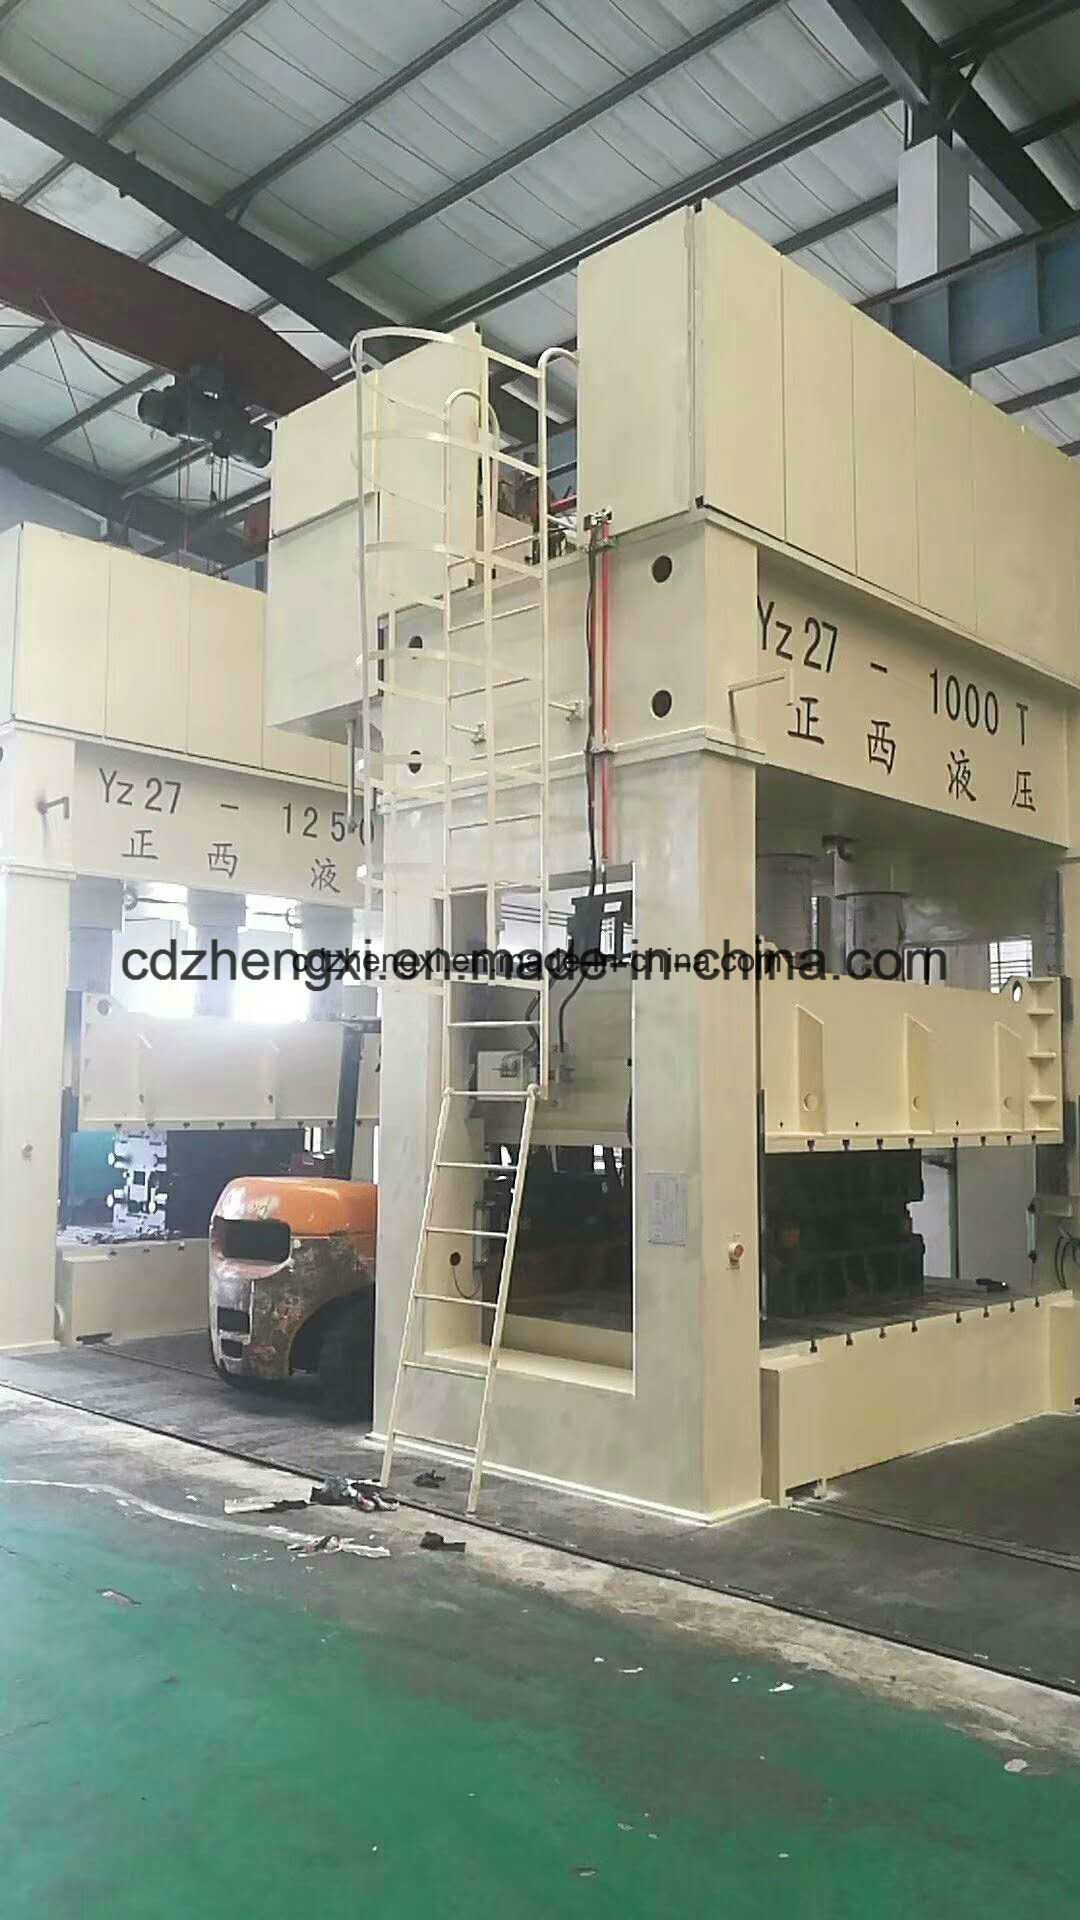 Hydraulic Press Machine for Steel Plate Molding 900 Ton